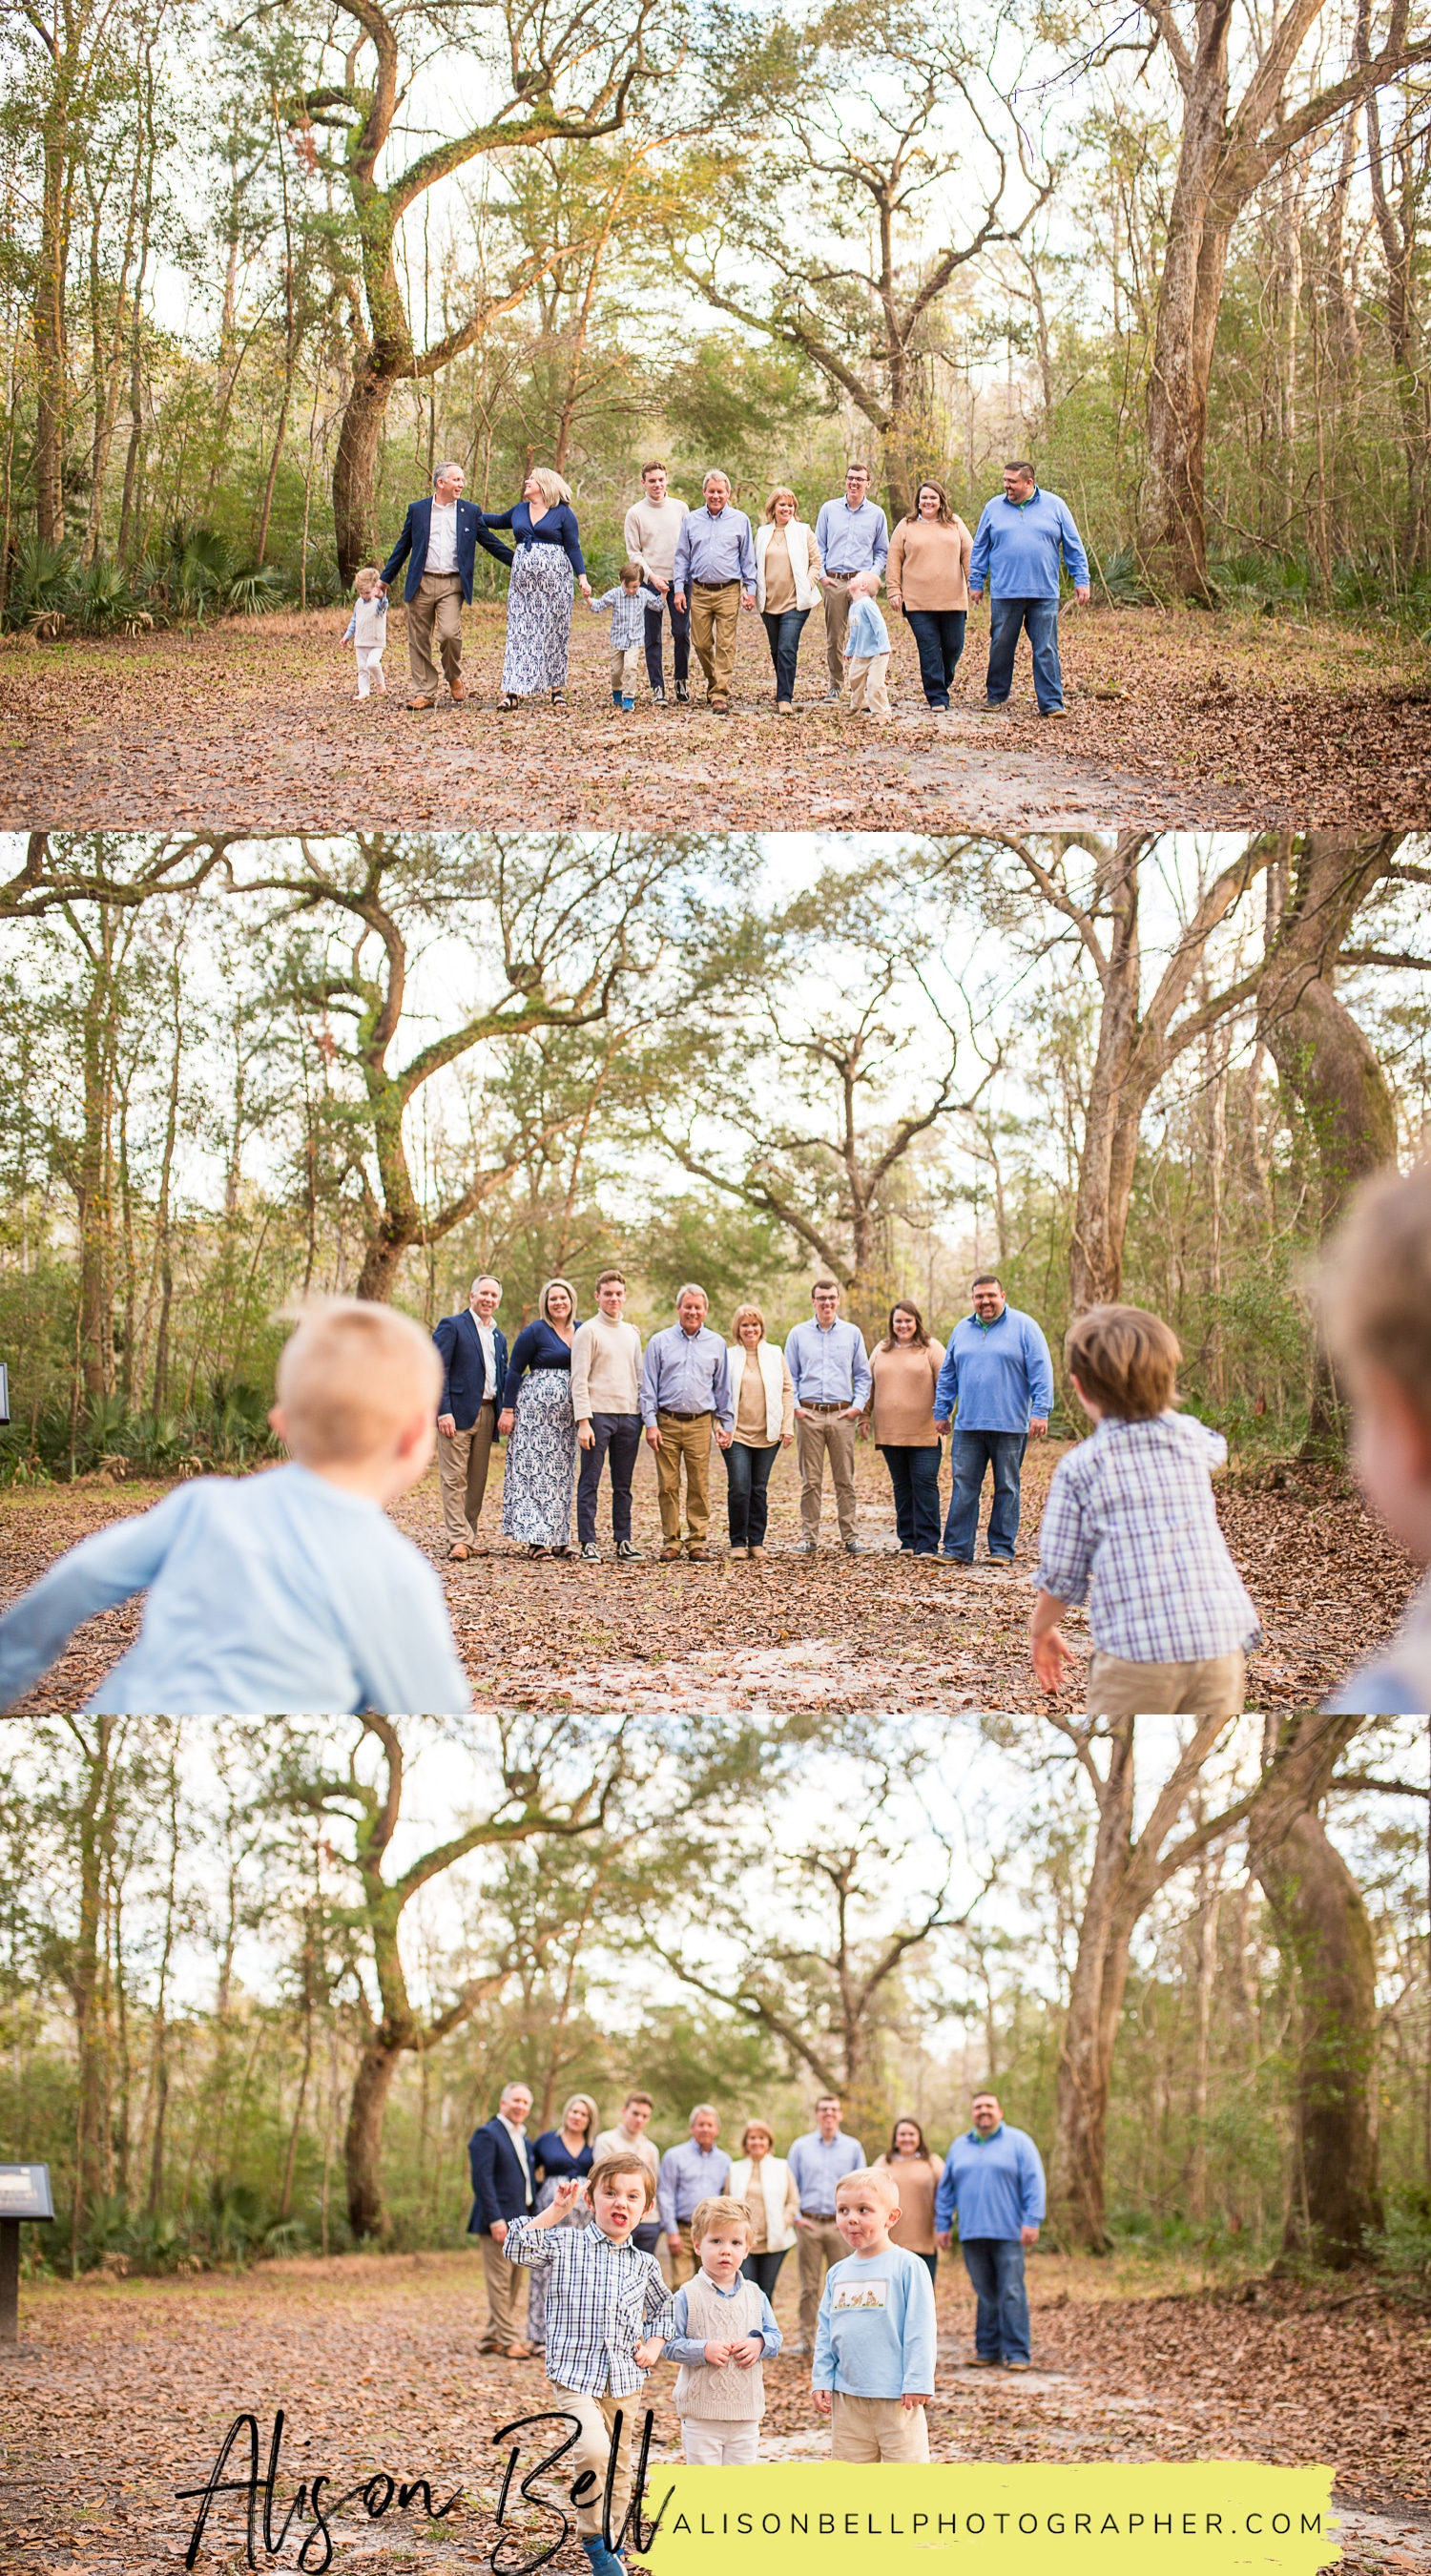 Extended family session with adult children, grandkids, and grandparents at Colonial Dorchester State Park in Charleston, South Carolina by Alison Bell, Photographer